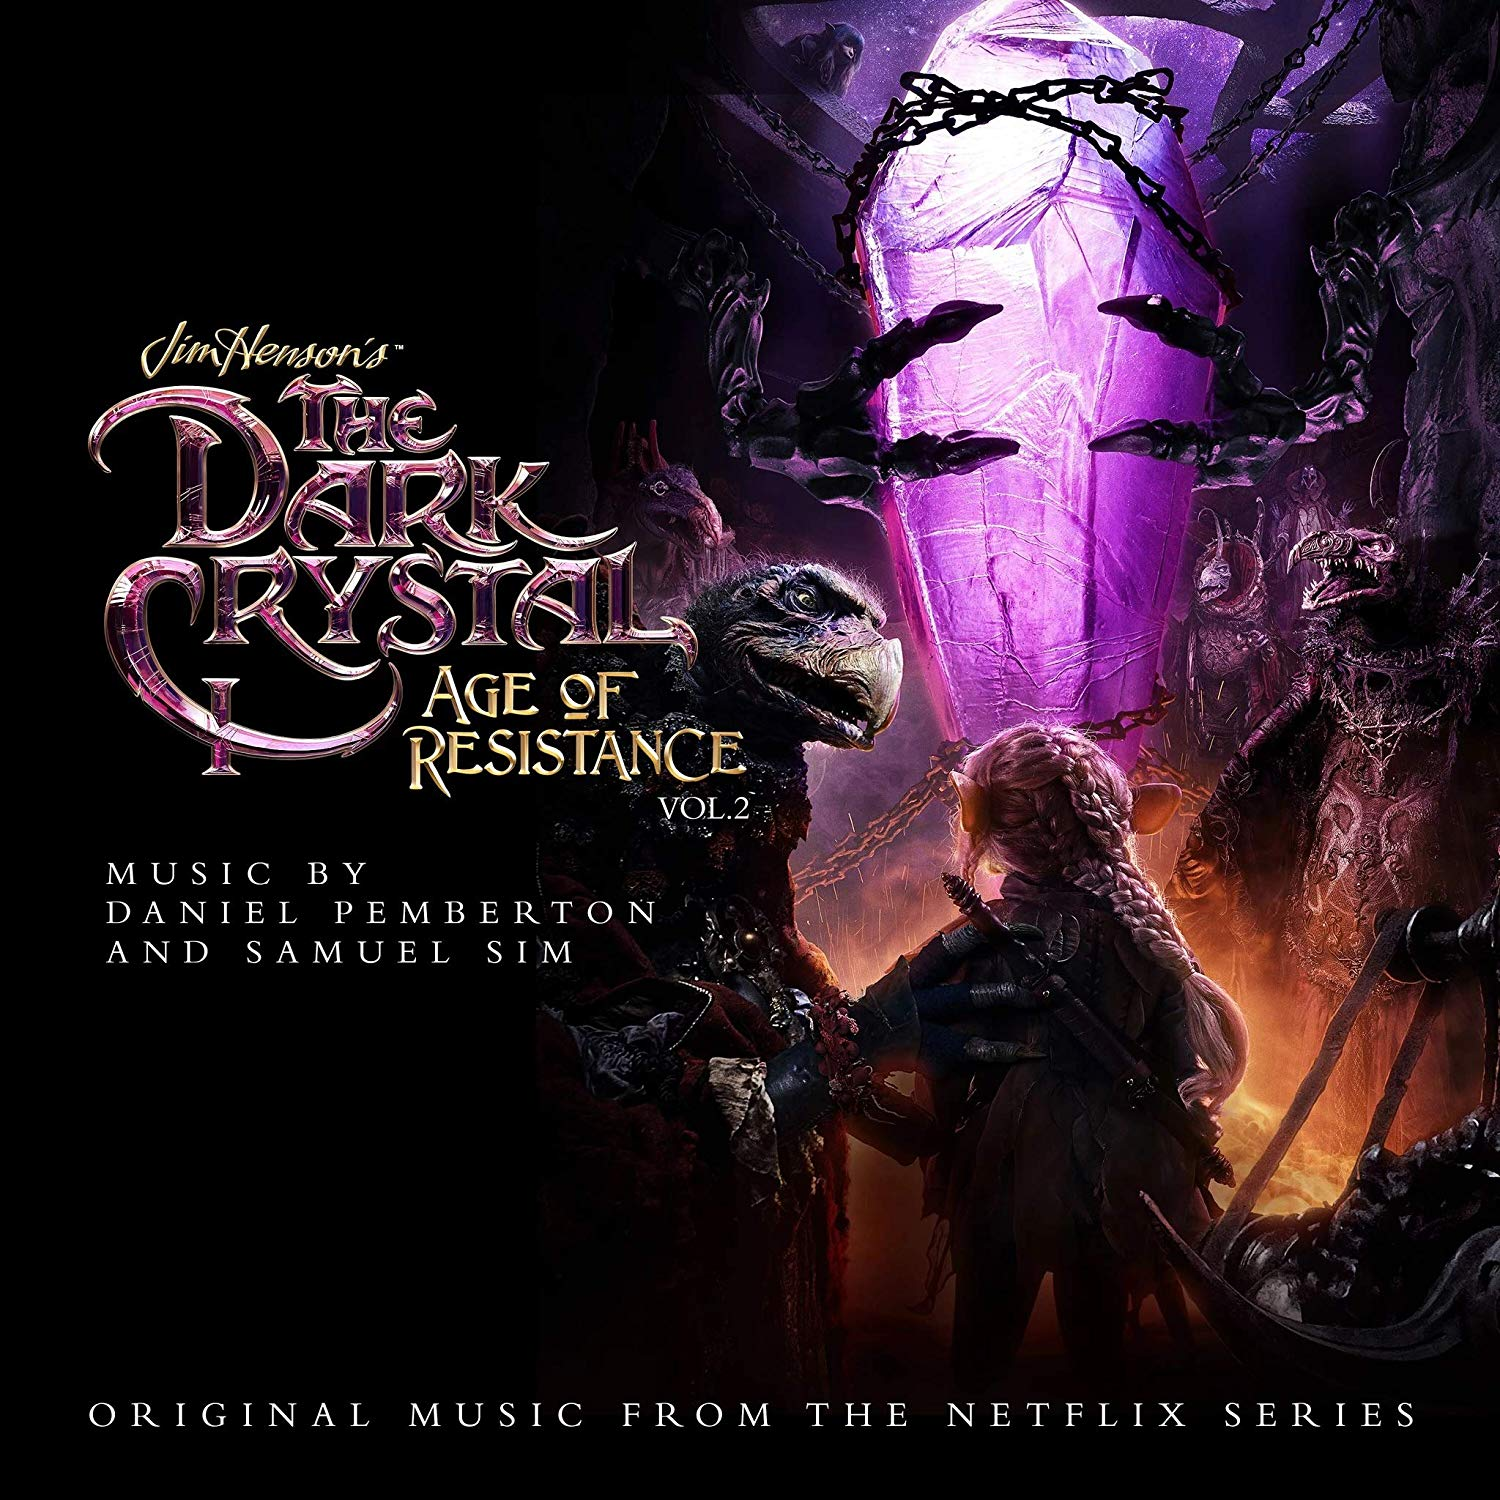 Dark Crystal (The) - Age of resistance Vol. 2 (2019) (vinile)